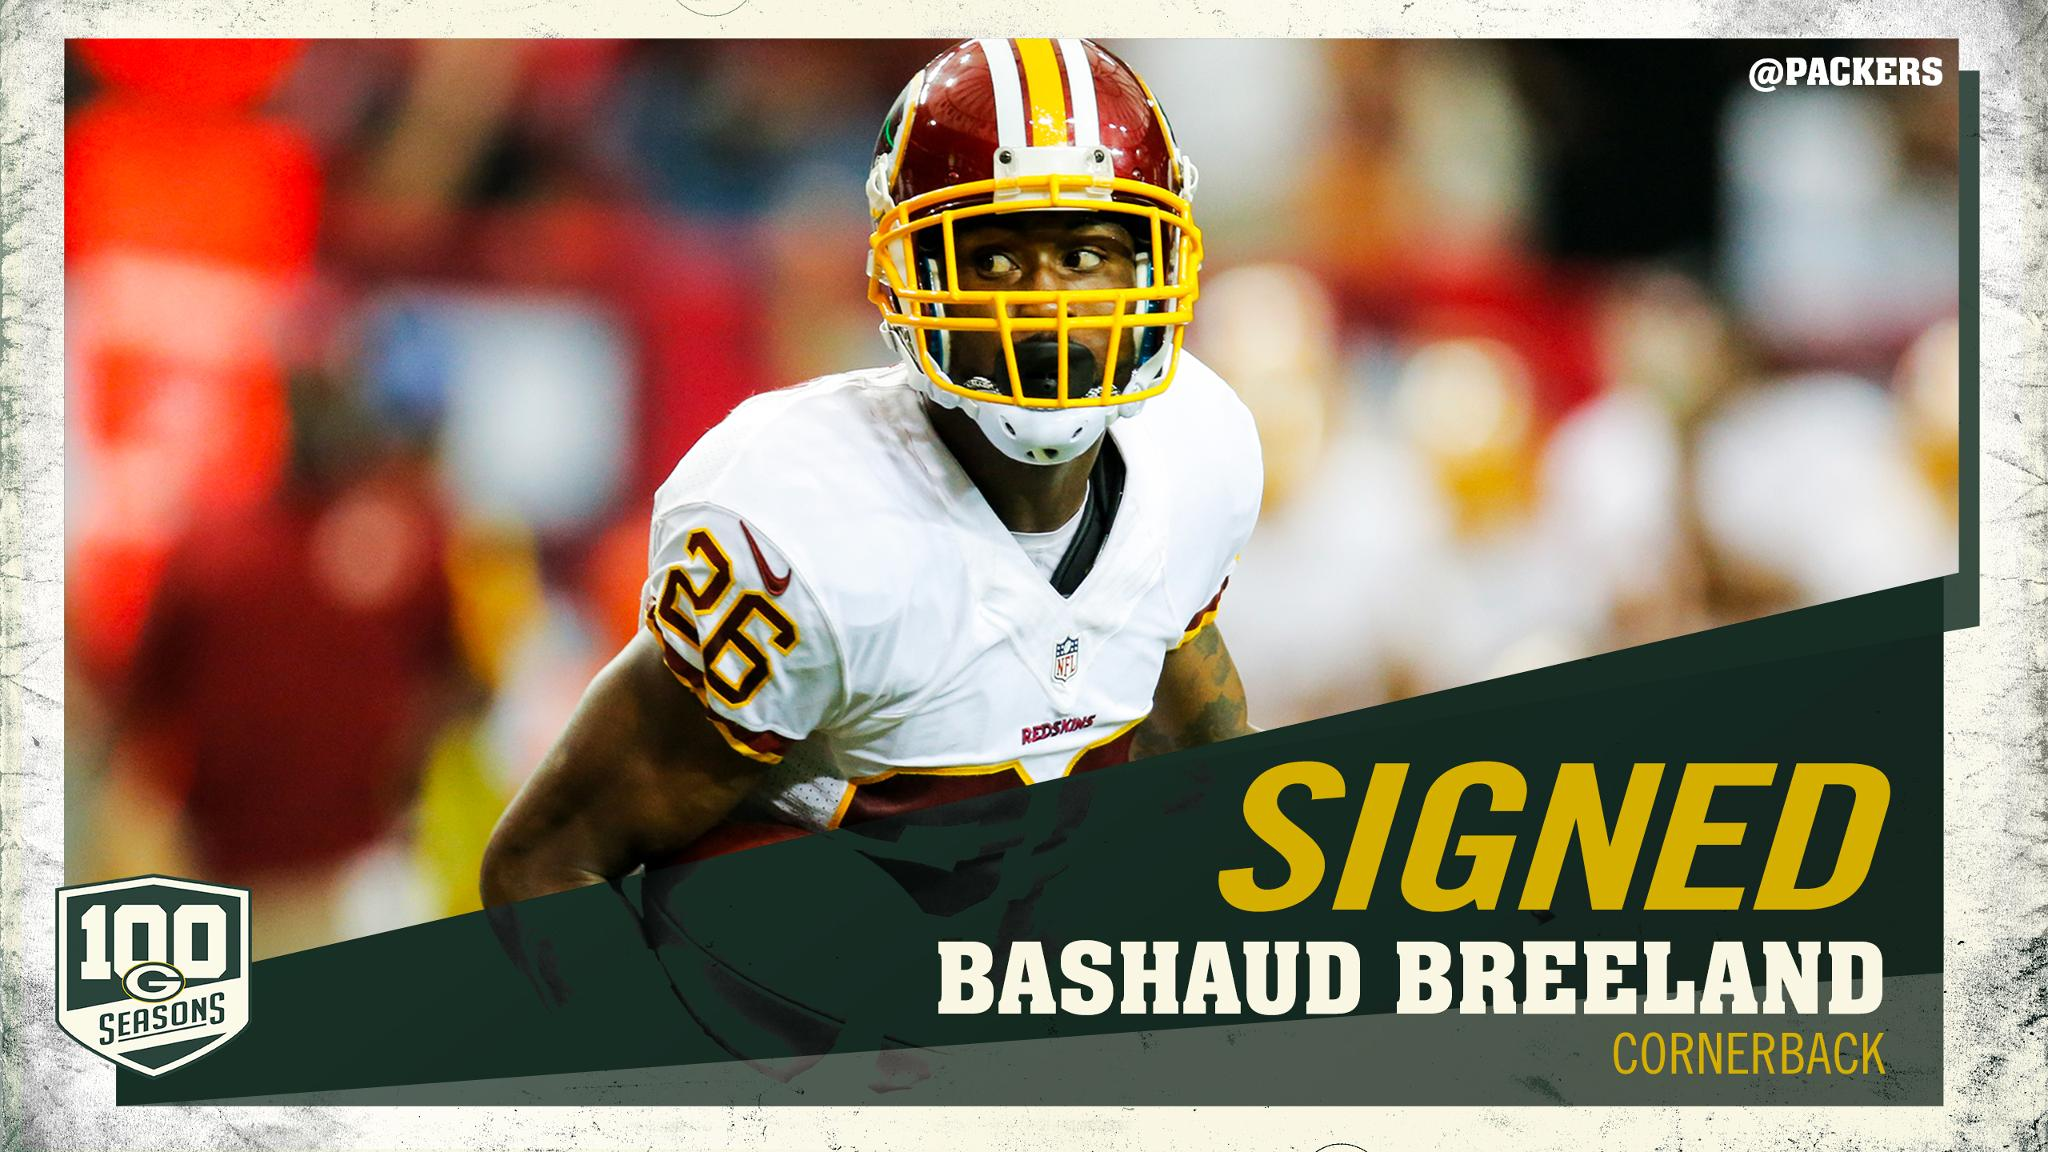 #Packers sign CB Bashaud Breeland  Welcome to Green Bay, @Bree2Land6  ��: https://t.co/30BCaIYWDc https://t.co/CIv50bKwC9